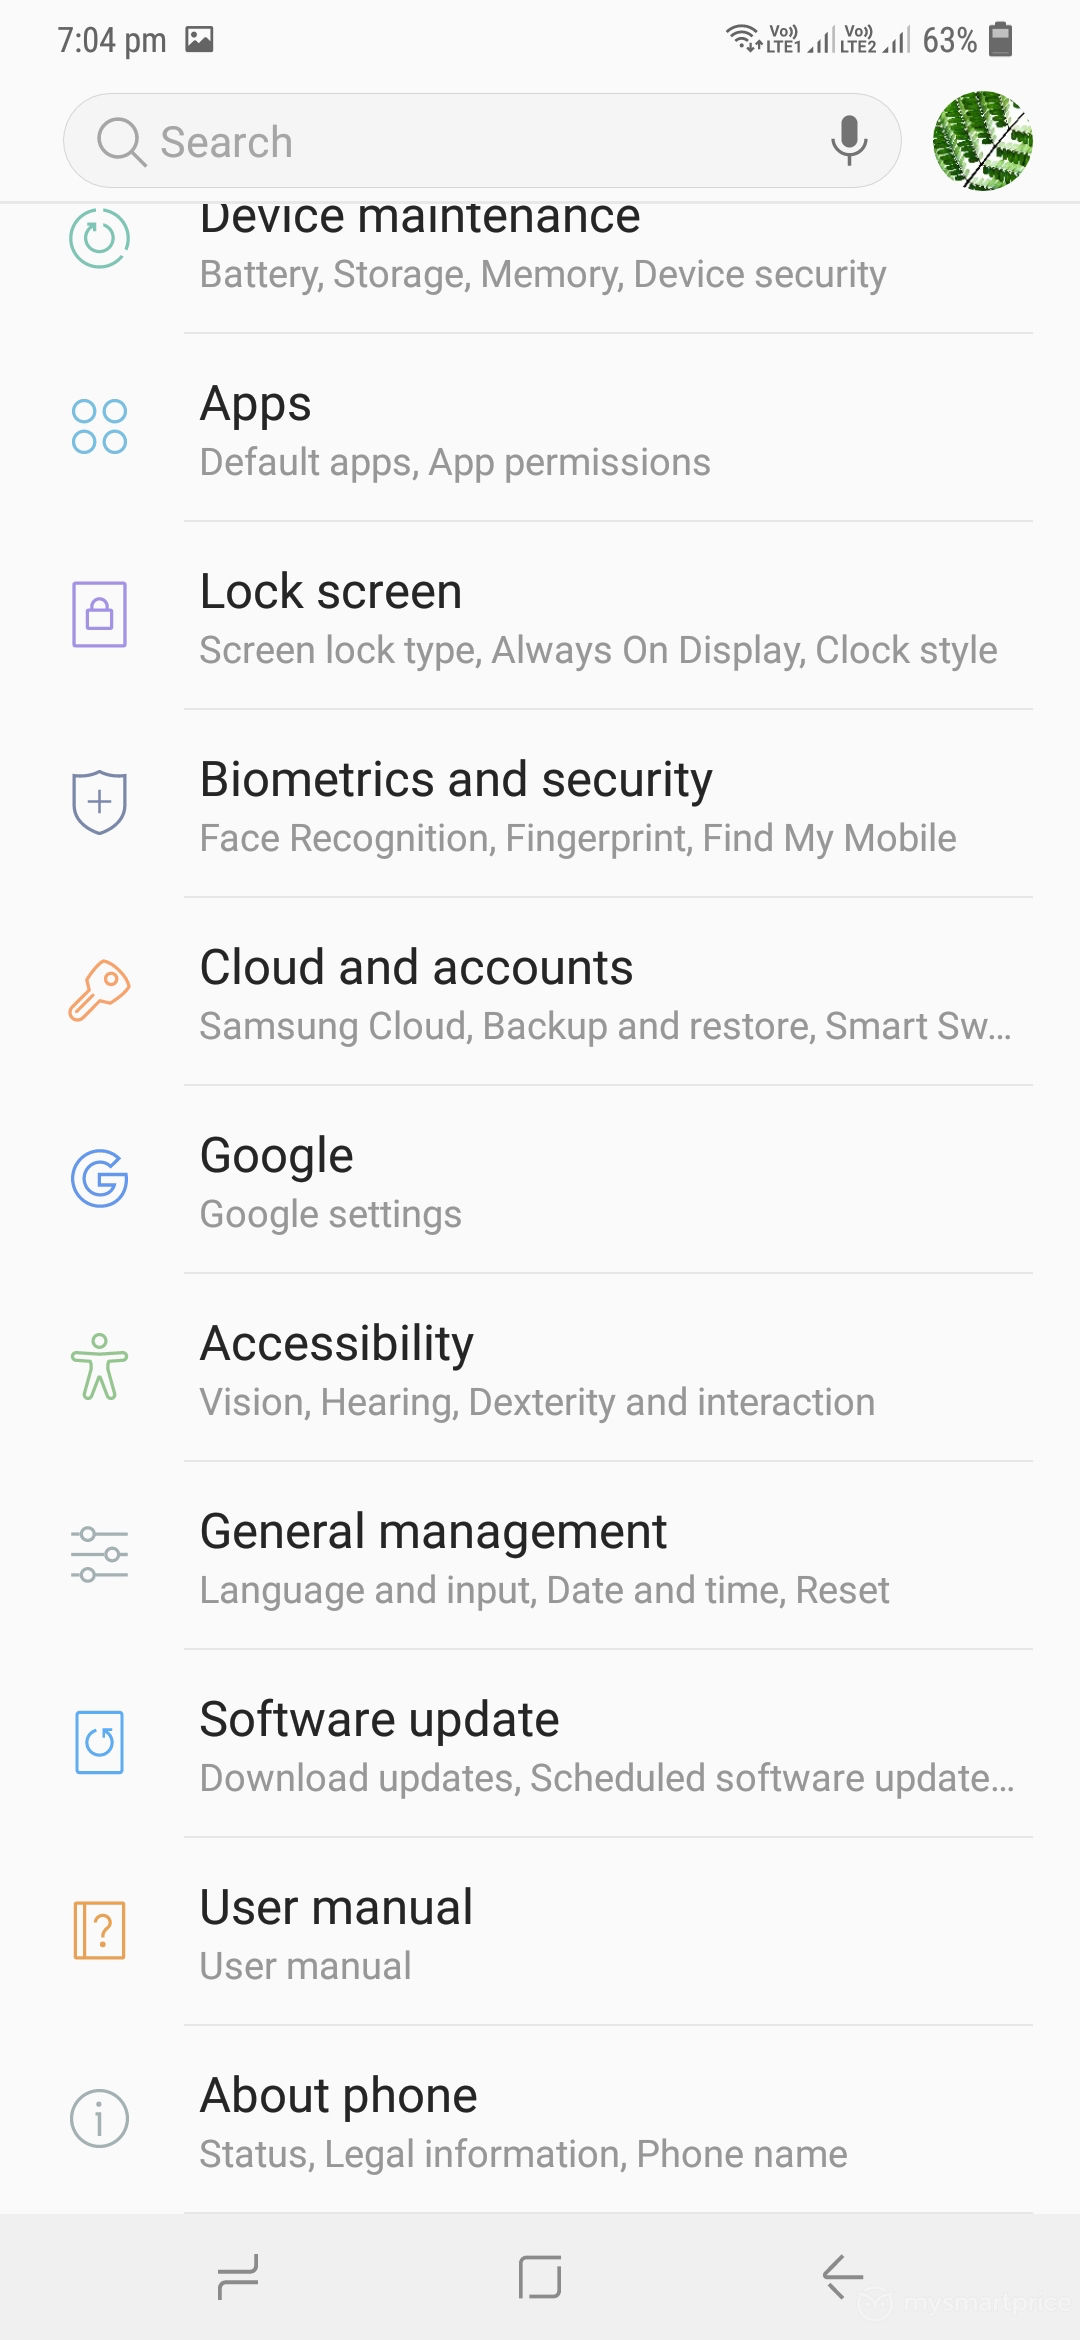 Samsung Galaxy M30 Review - UI Design 18 (Settings Page 02)